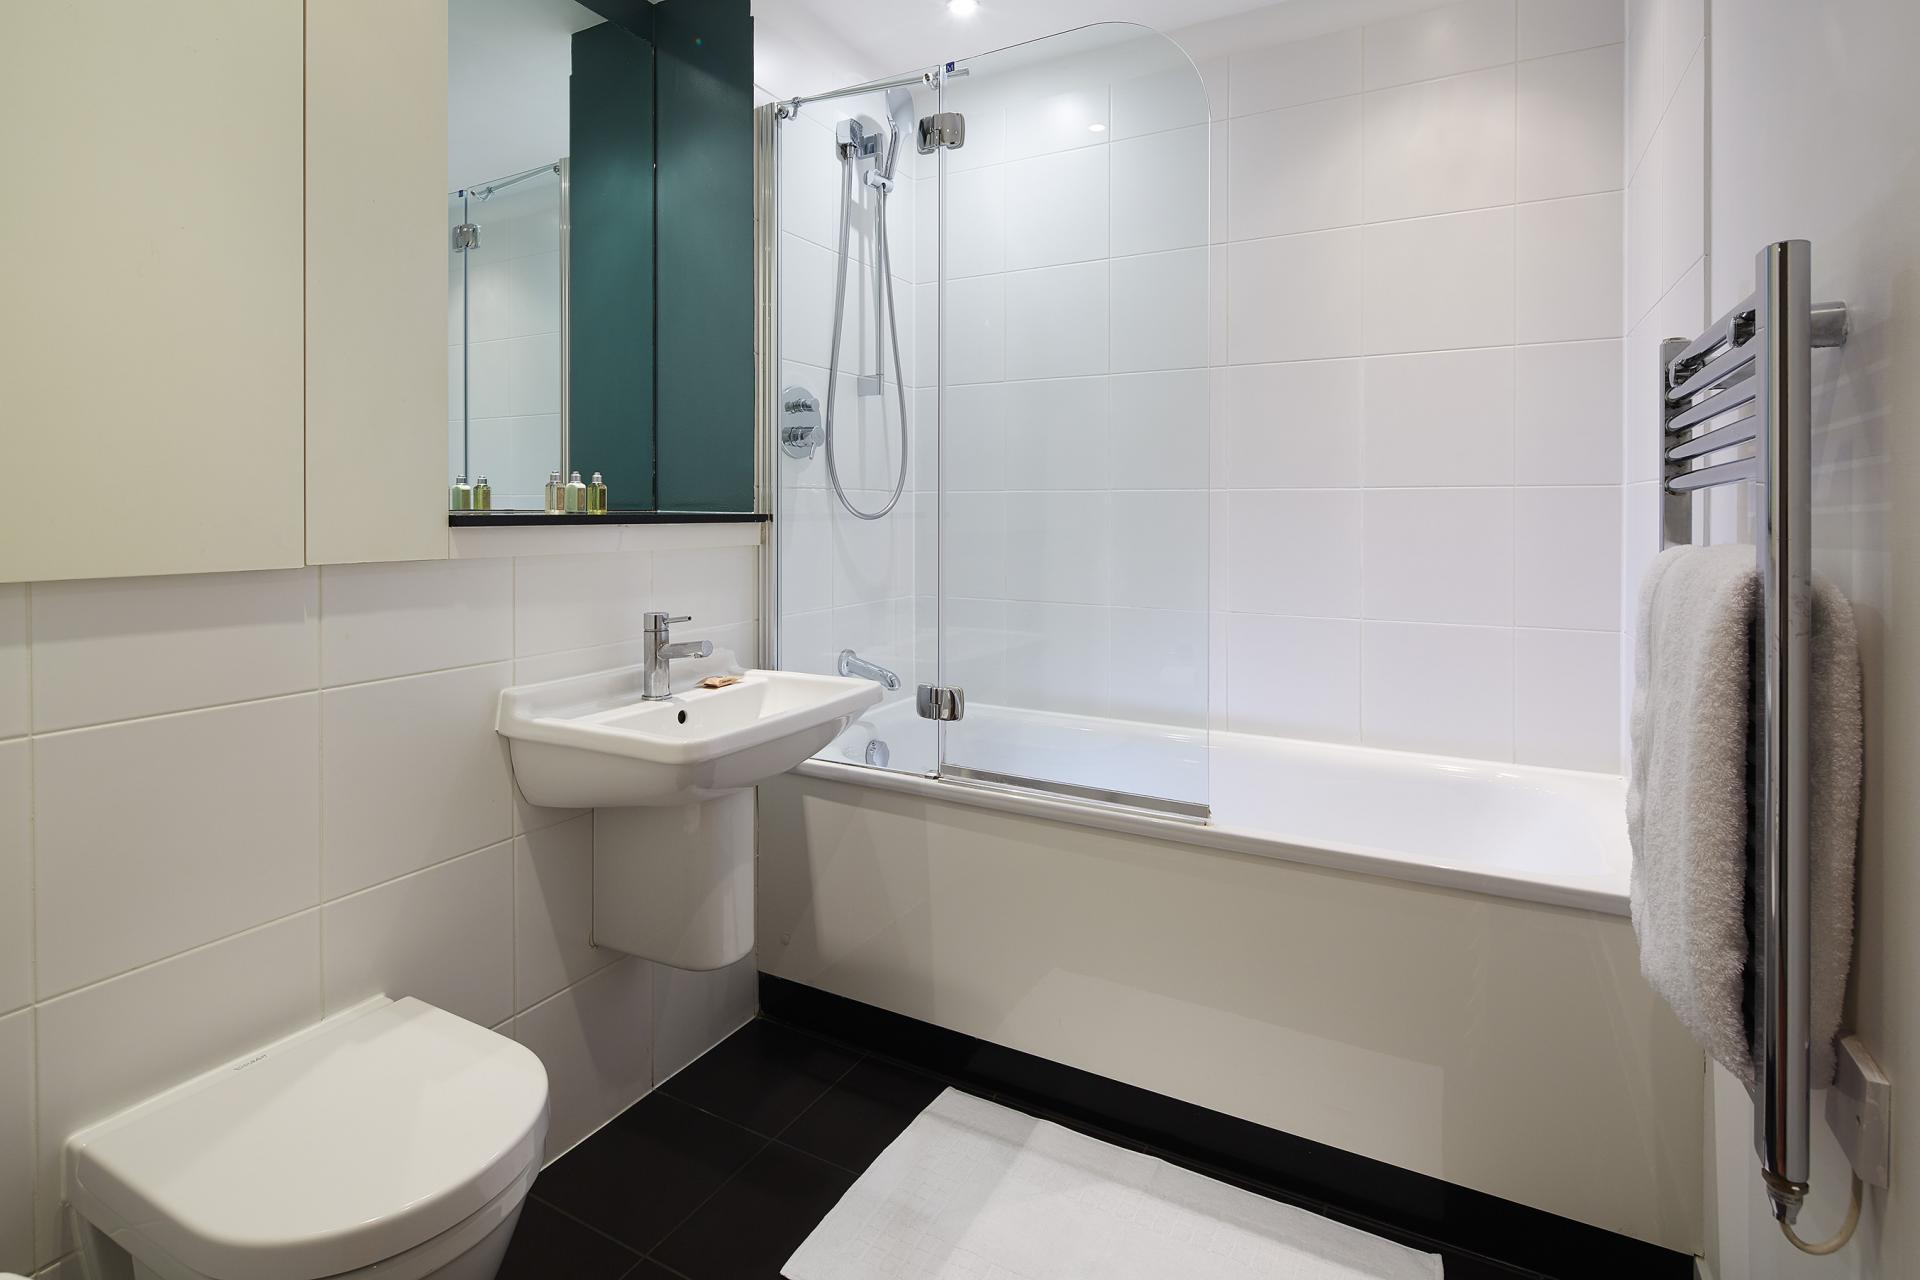 Bathroom at Marlin Canary Wharf Apartments, Canary Wharf, London - Citybase Apartments